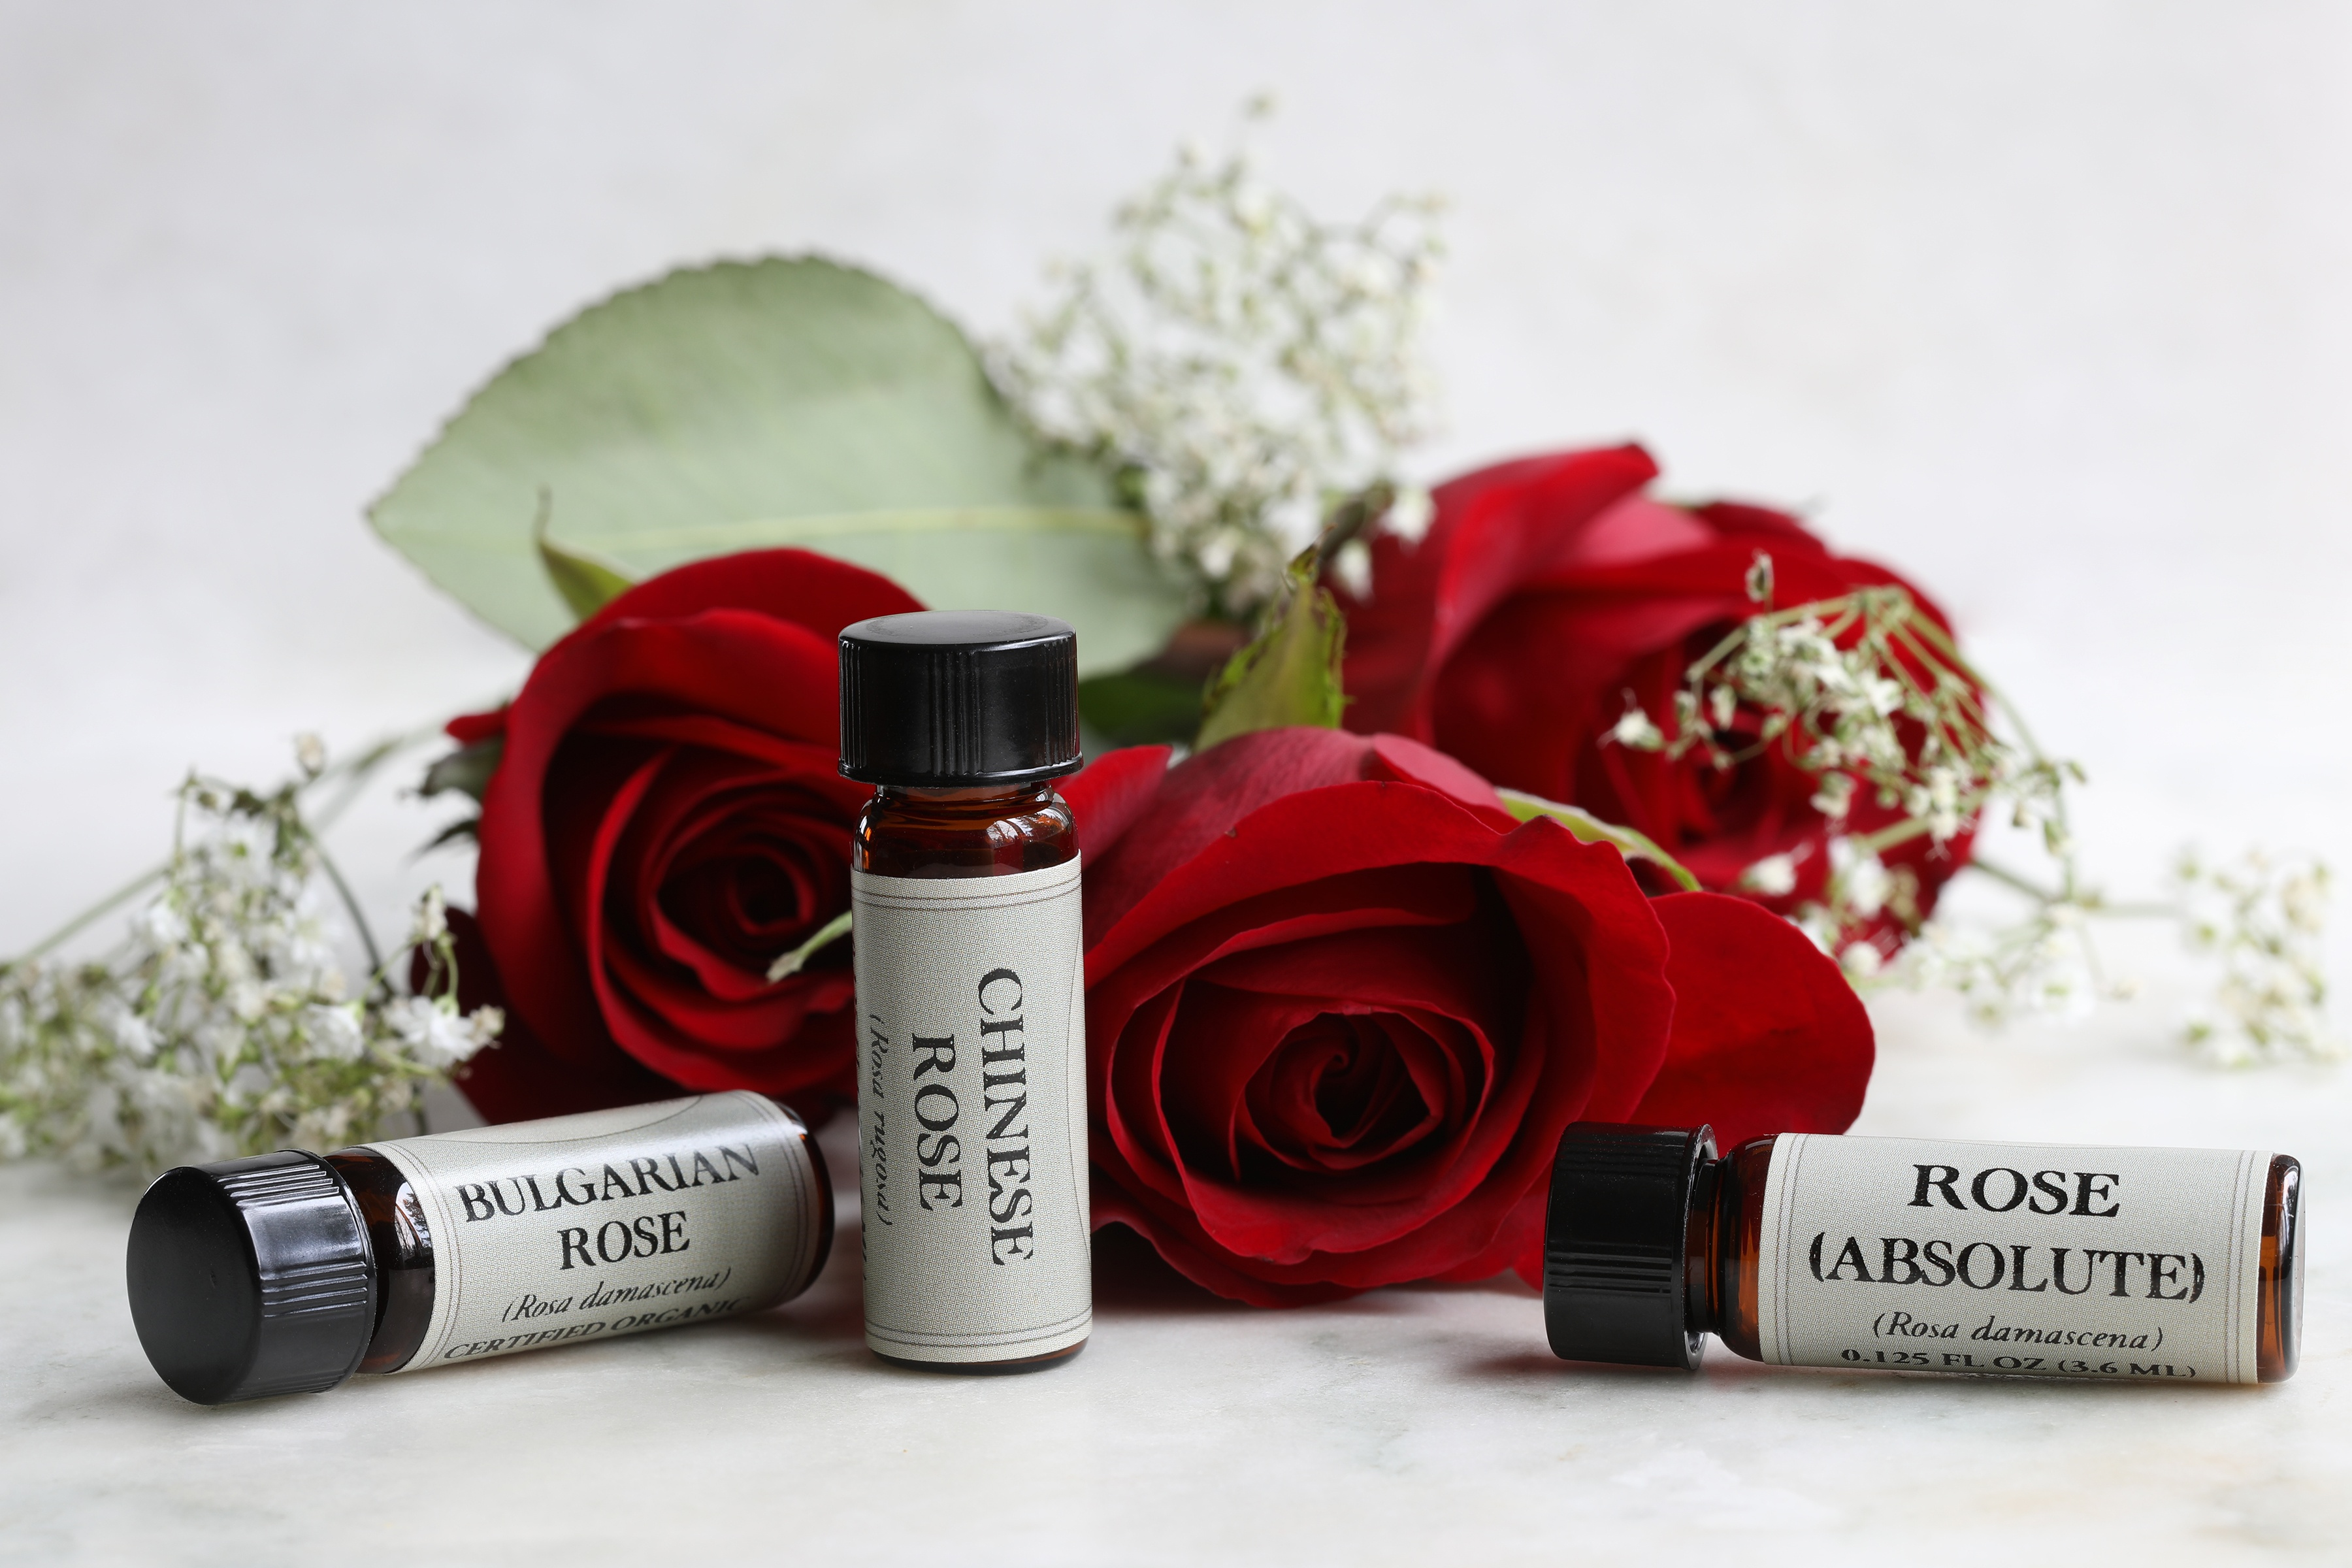 .125 oz bottles of rose absolute, chinese rose essential oil, bulgarian rose essential oil